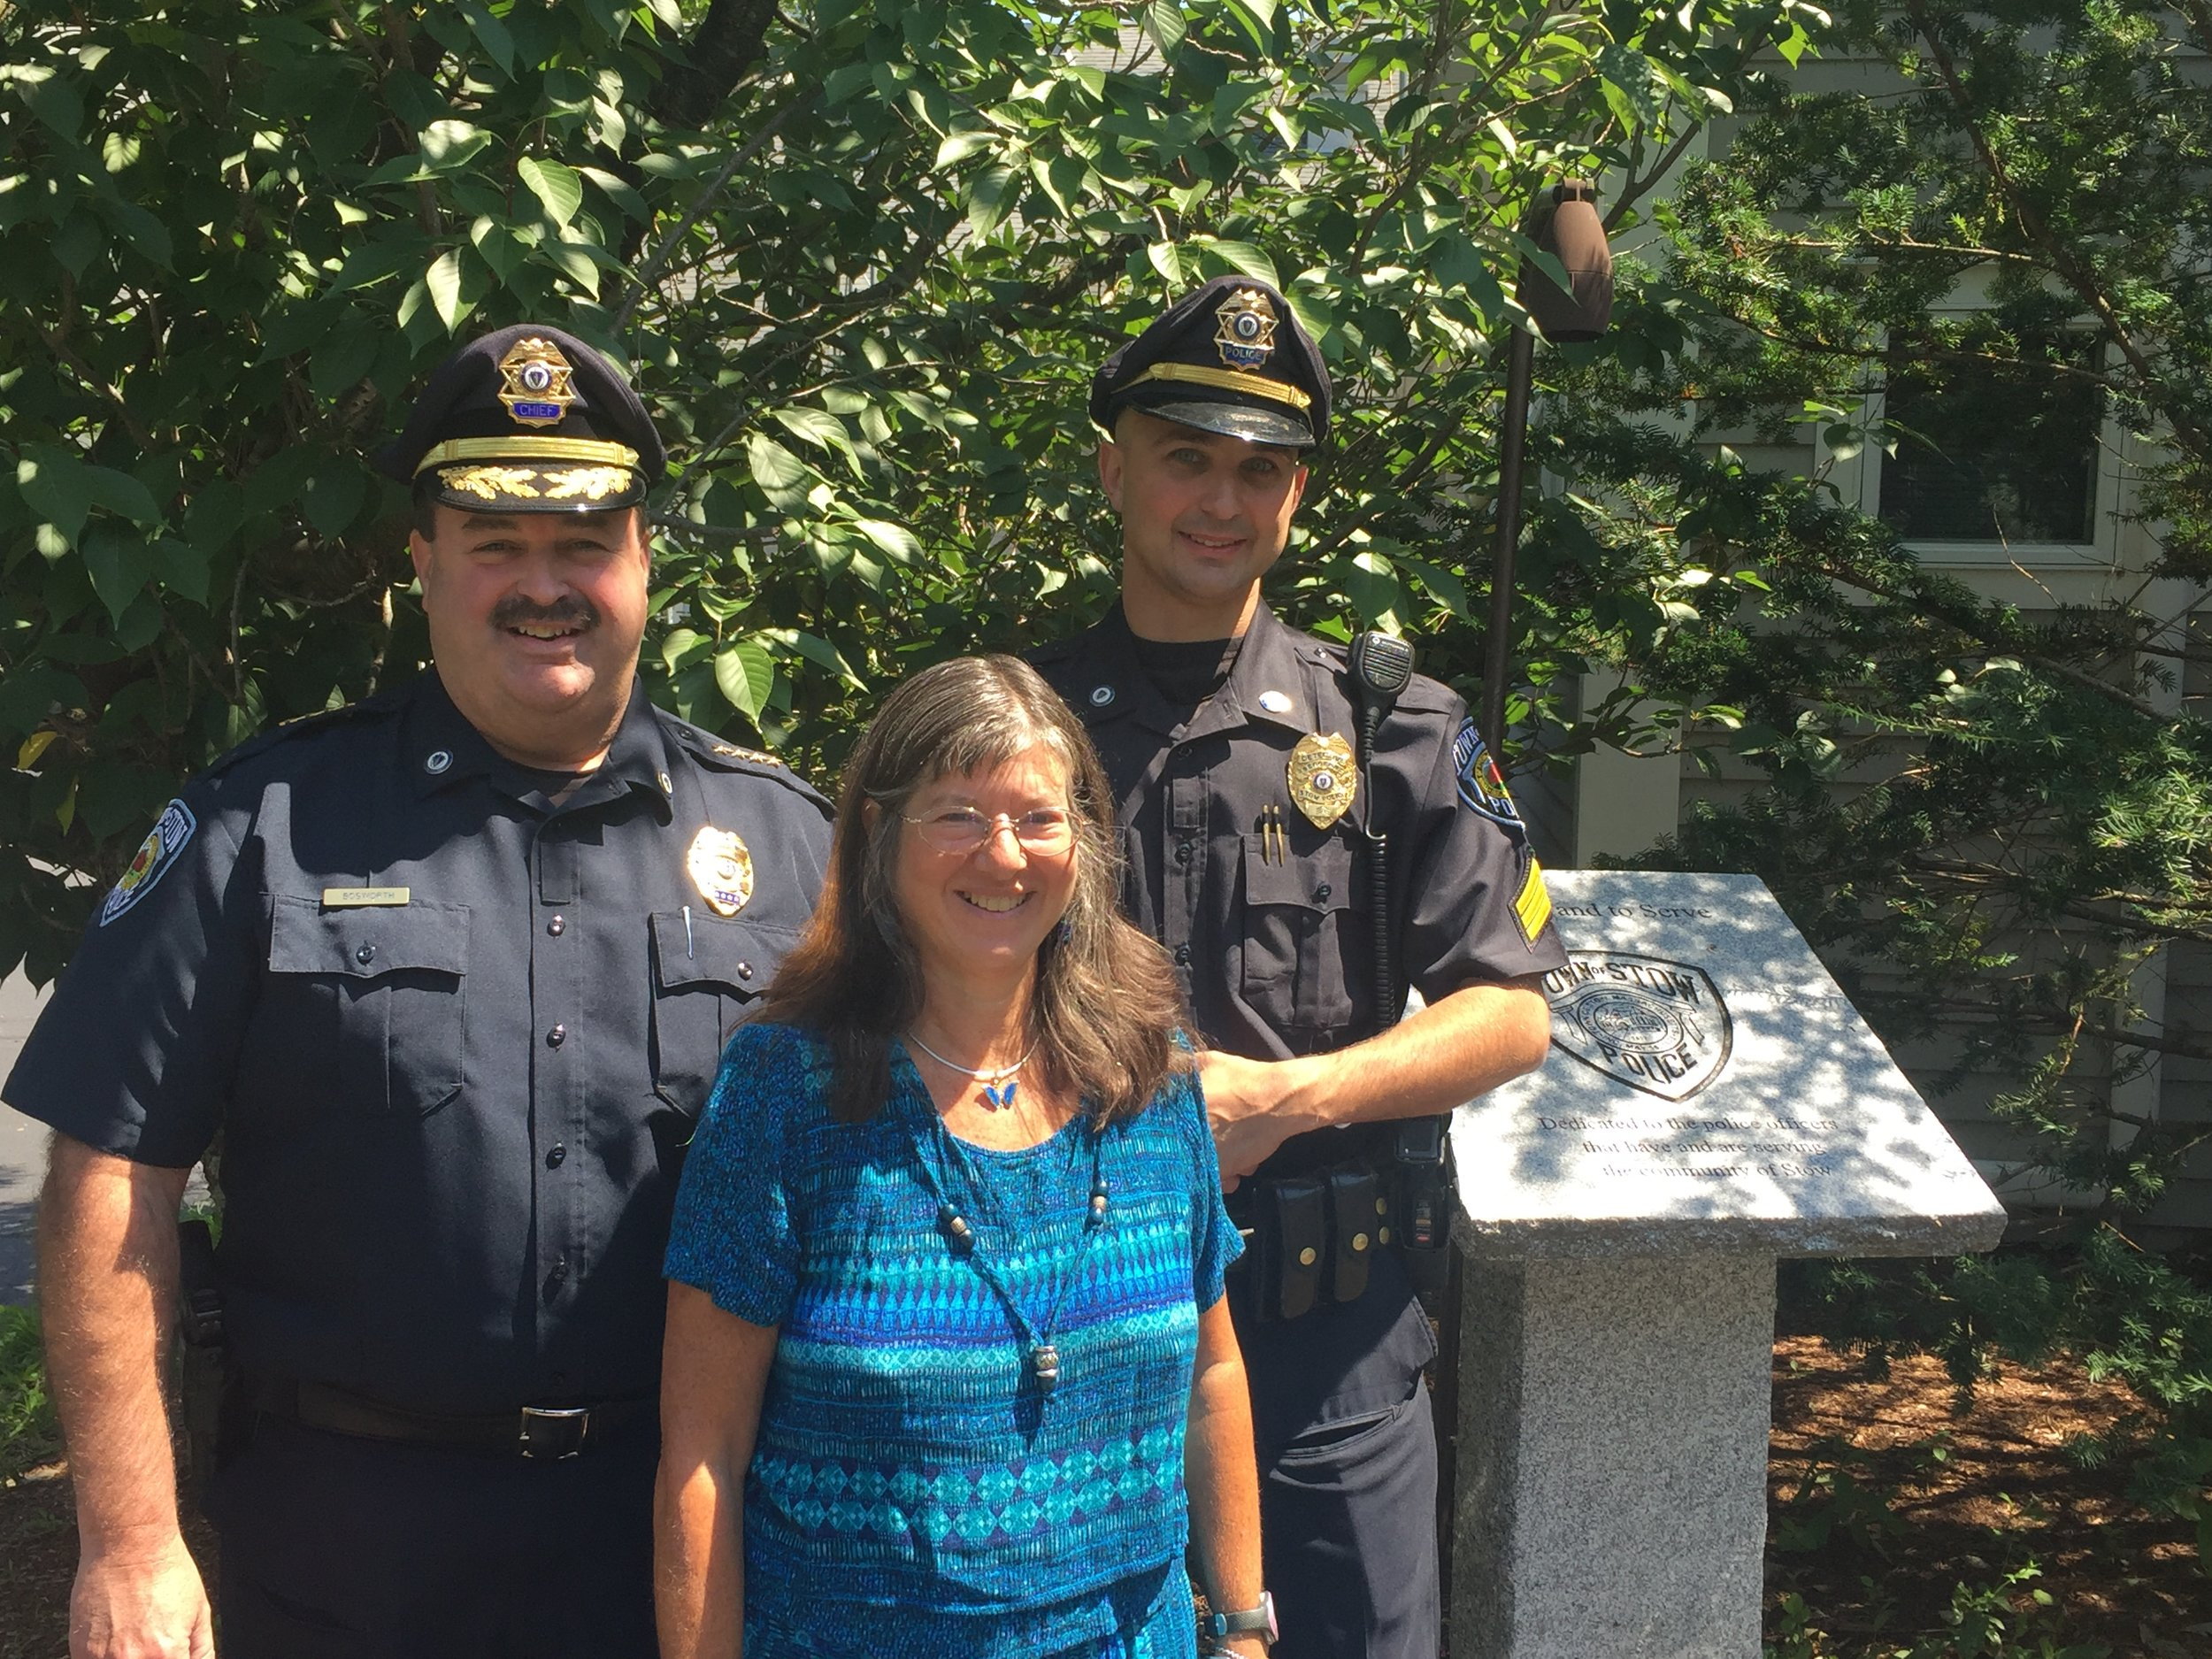 Stow Police and a citizen work with Communities for Restorative Justice